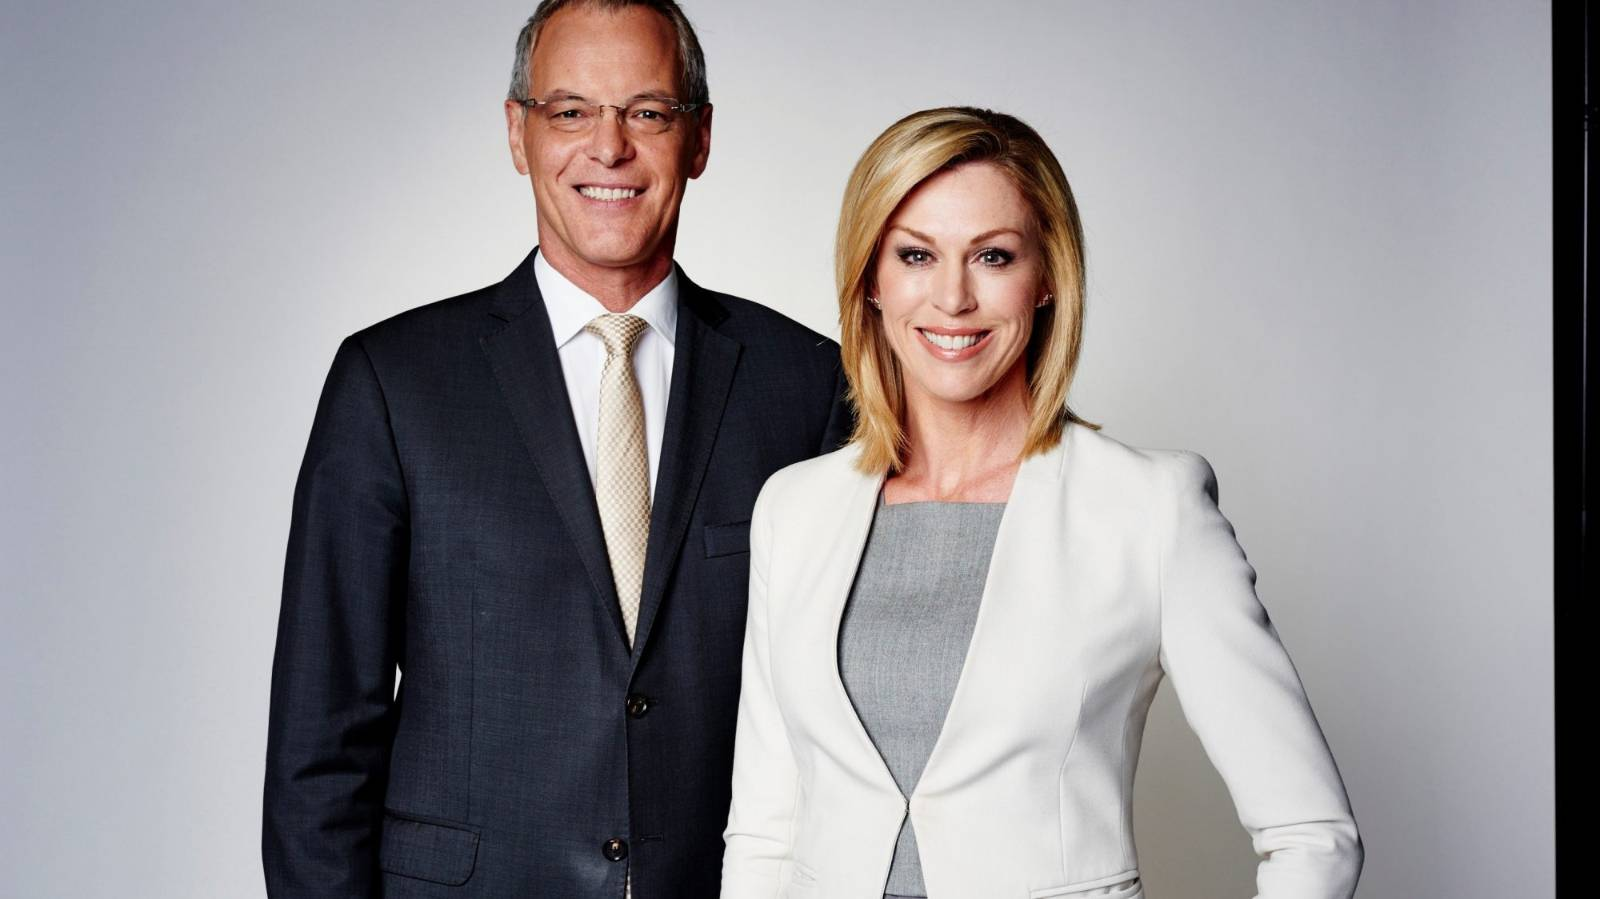 TVNZ has a chance to shake up the 6pm news